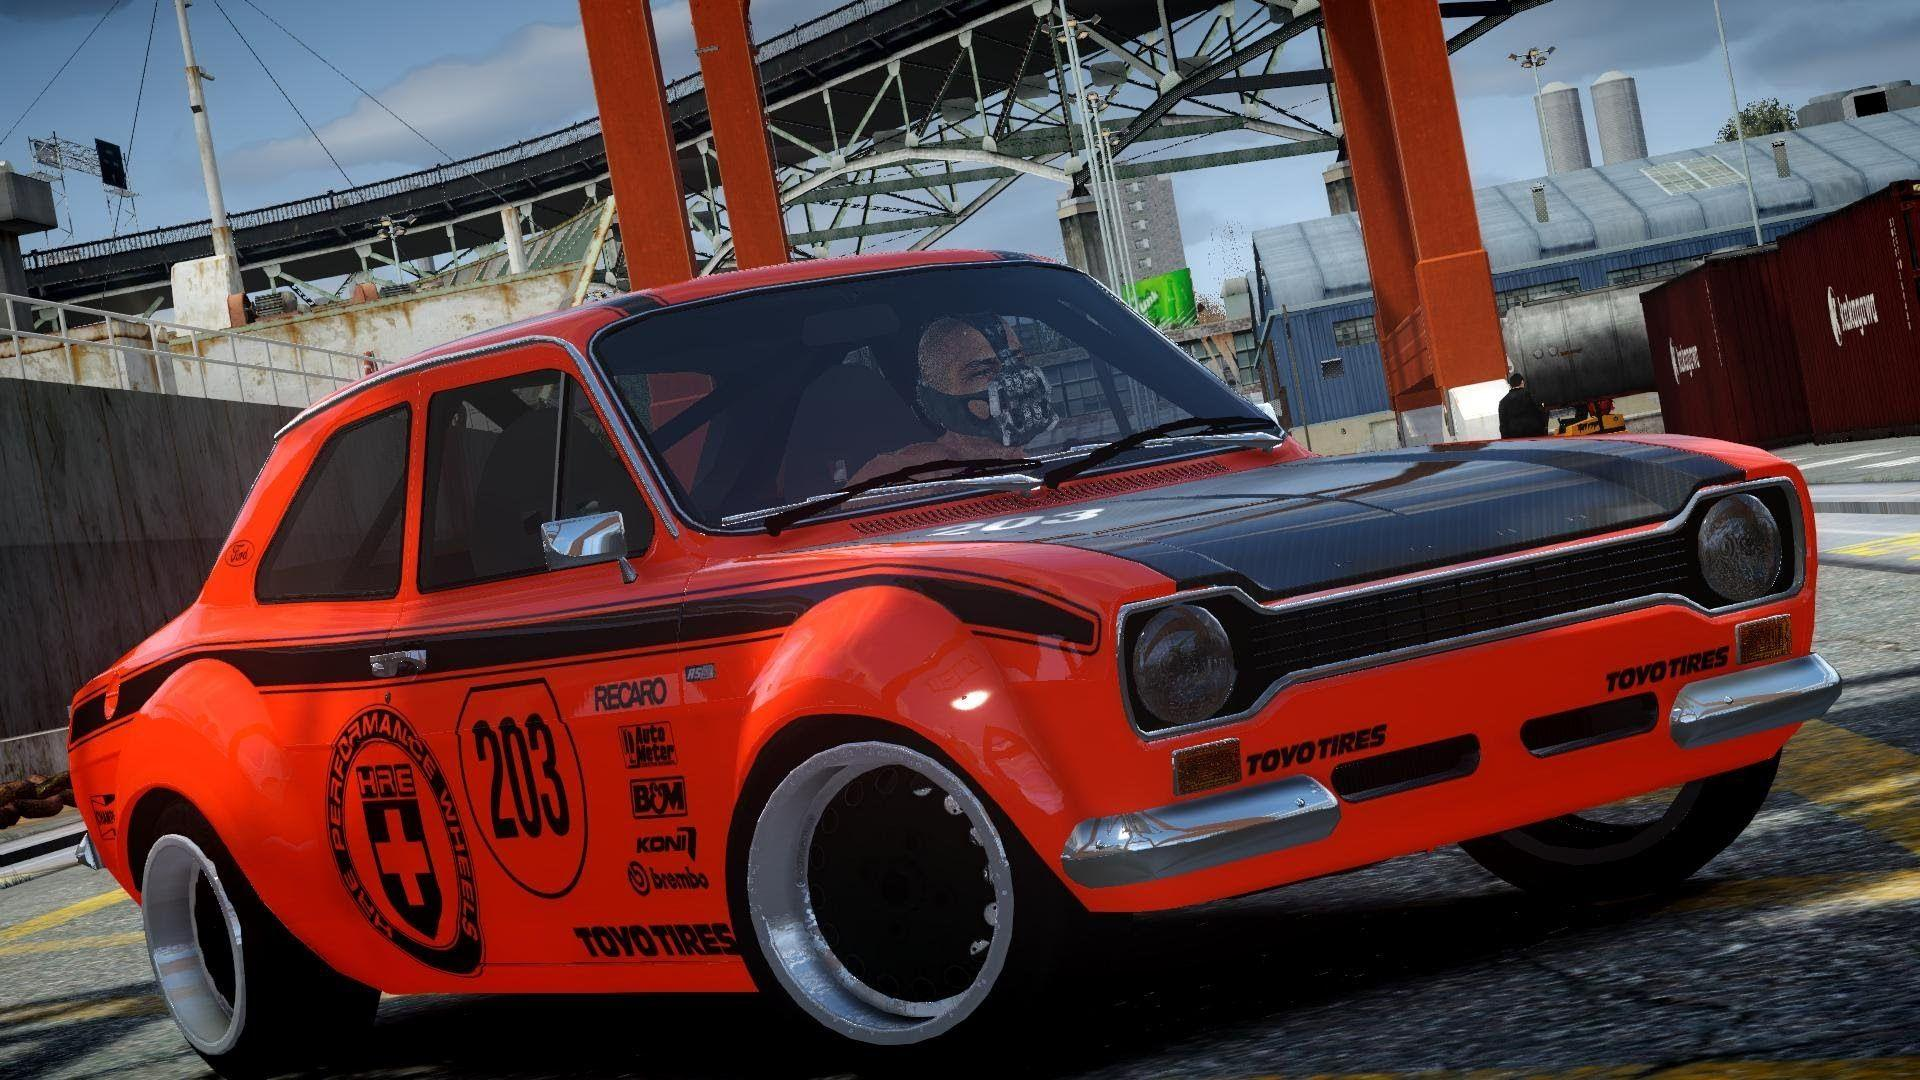 Ford Escort Mk1 wallpapers